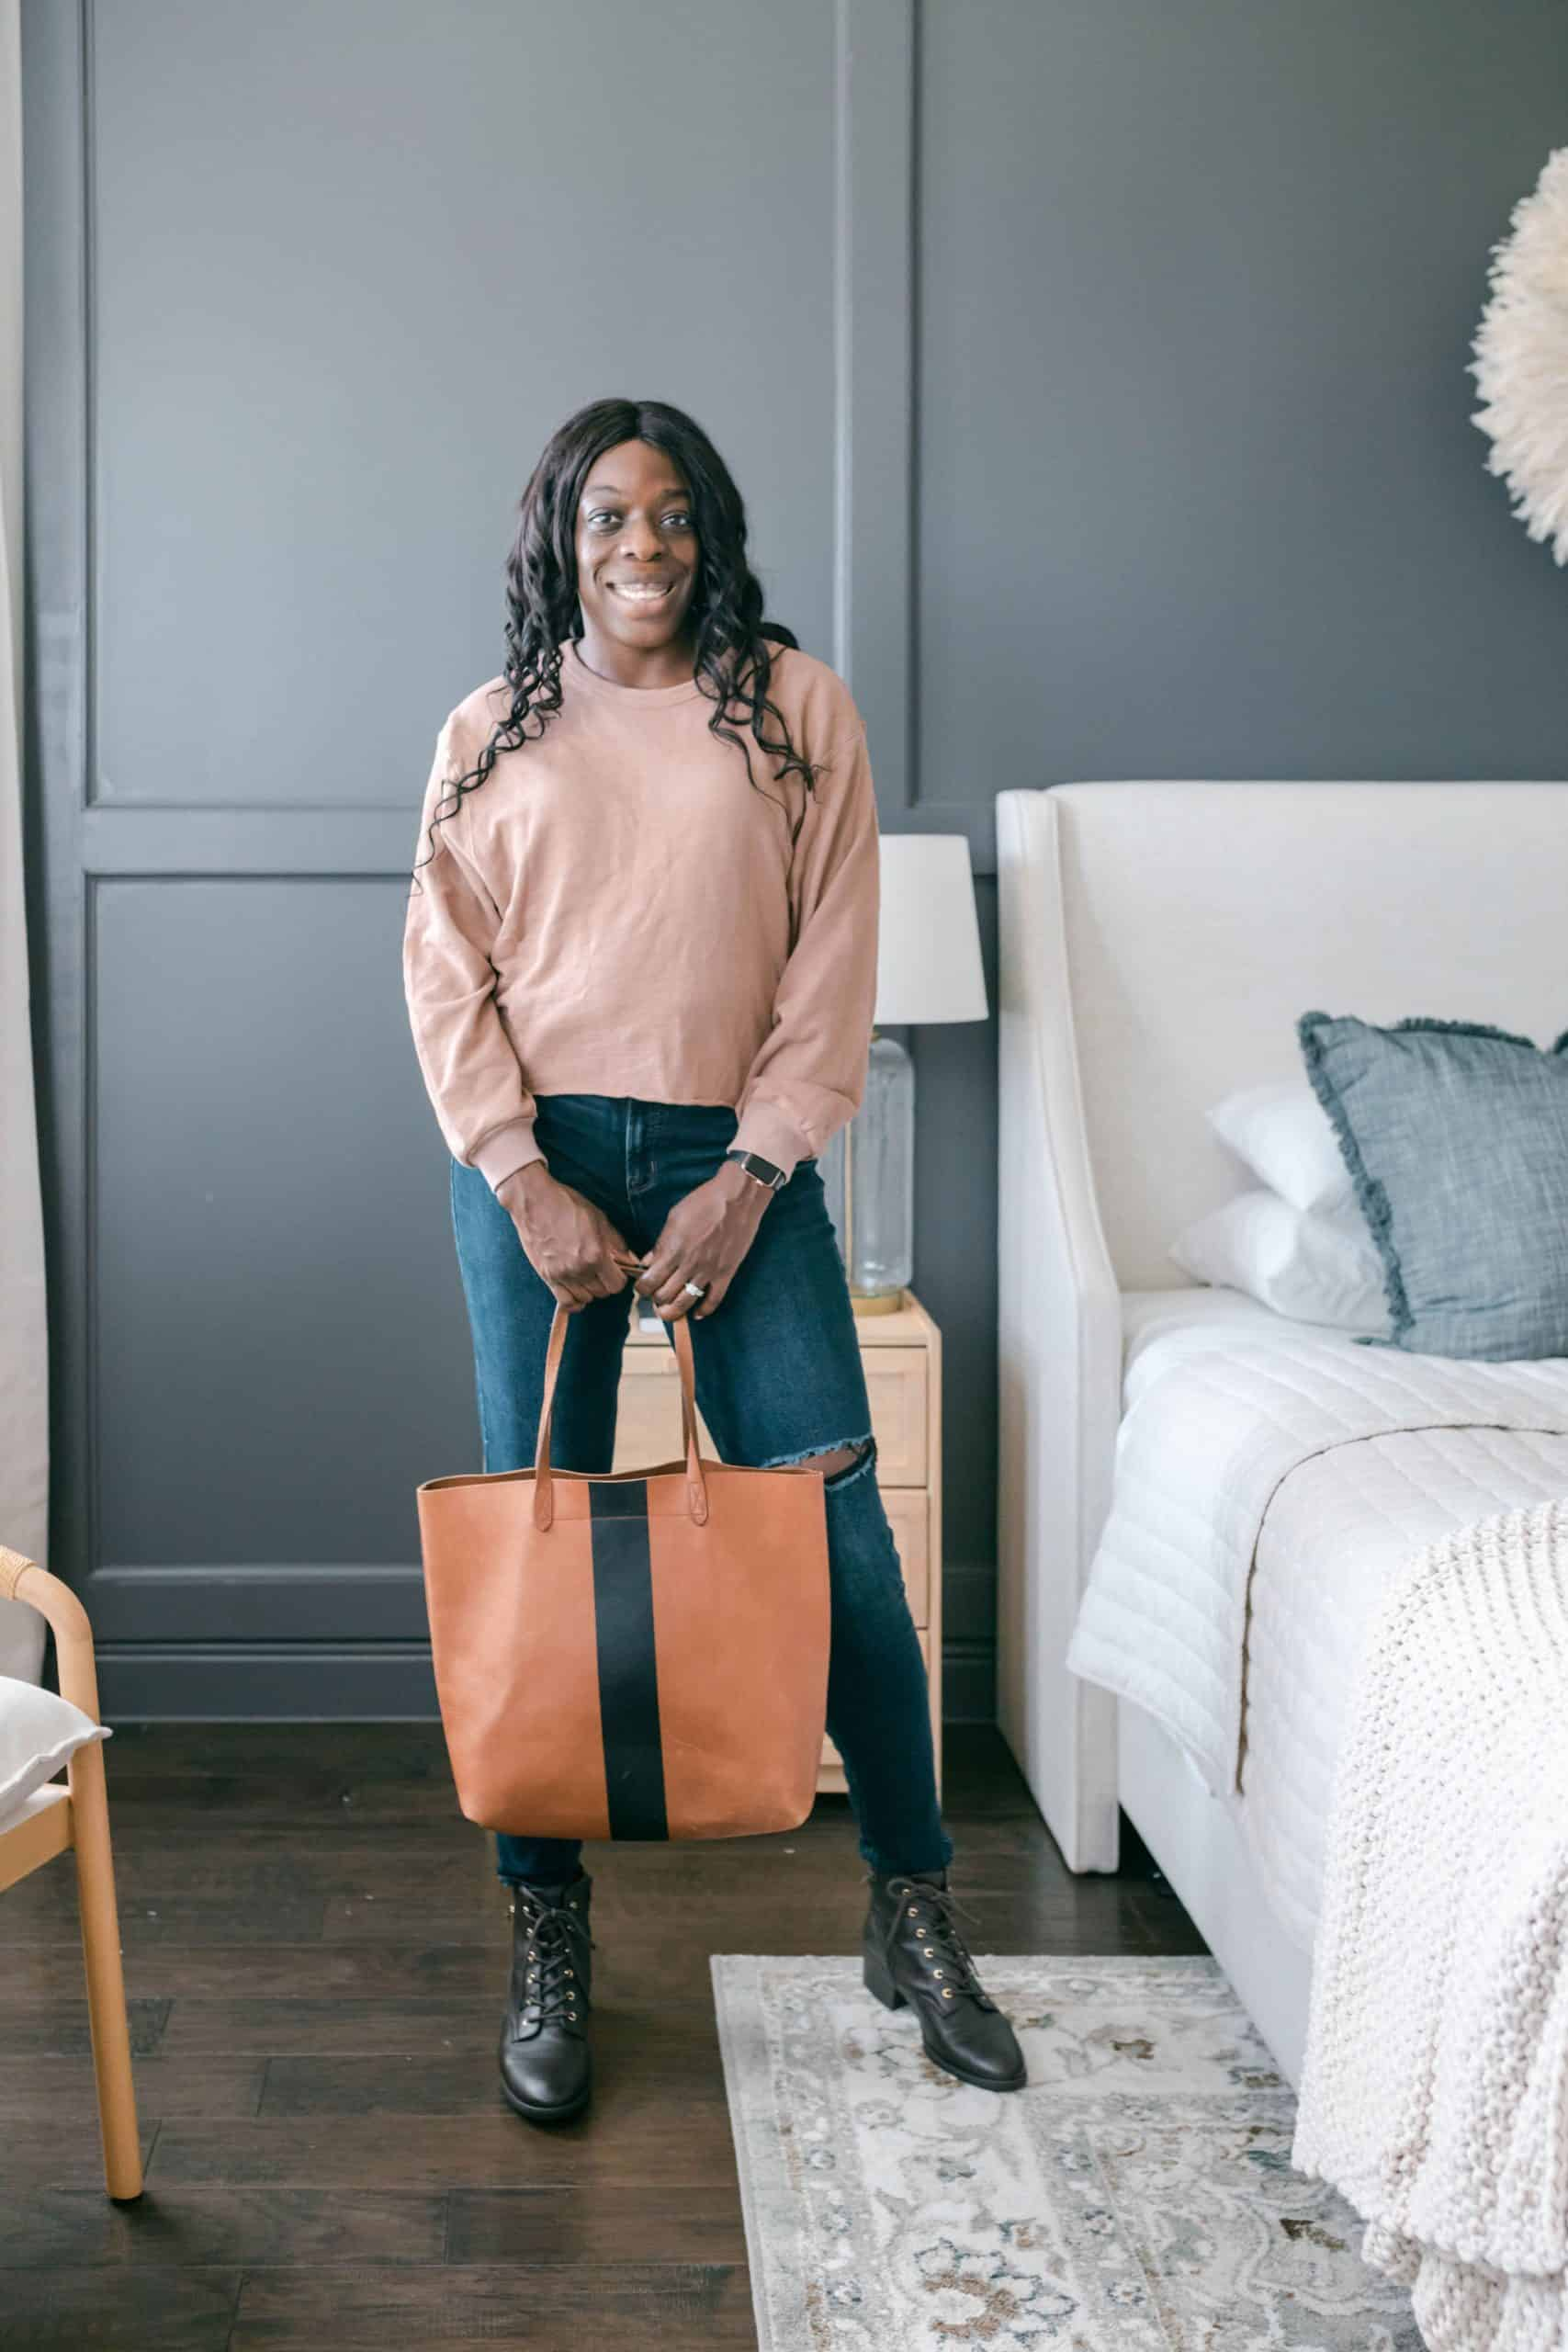 Modeling with a tote bag in bedroom